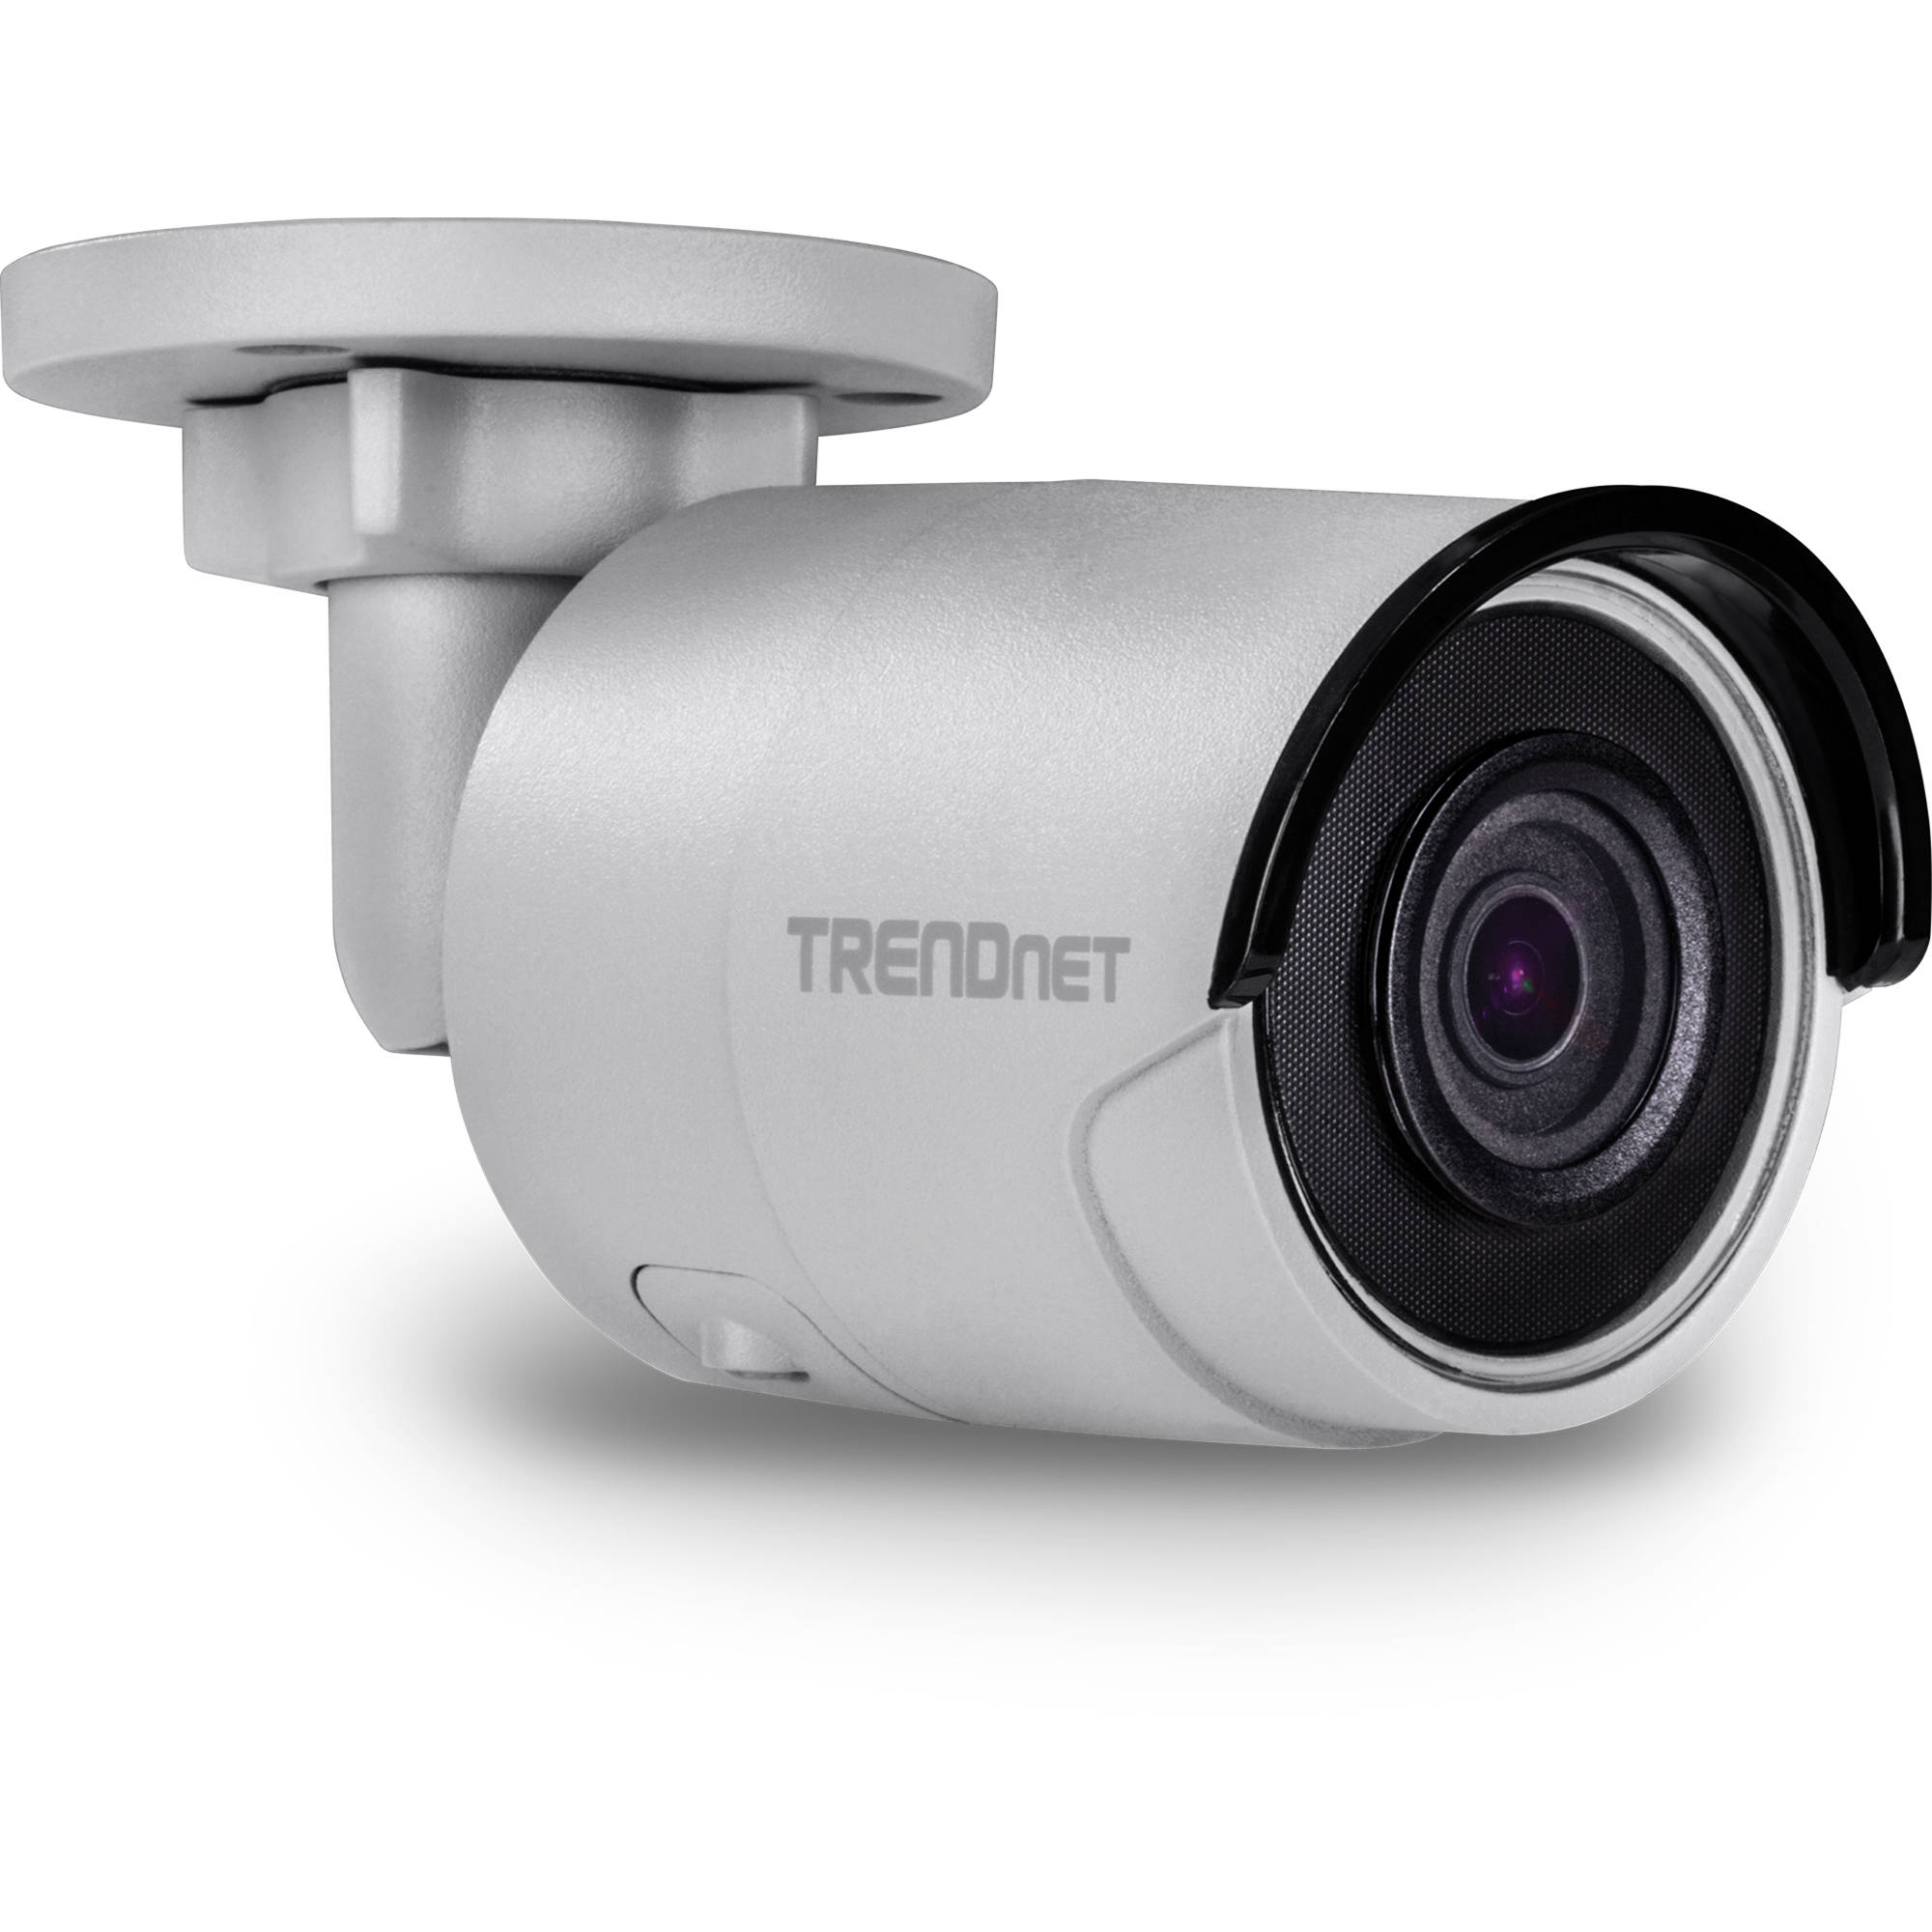 Trendnet tv ip318pi 8mp outdoor network bullet camera tv for Camera tv web